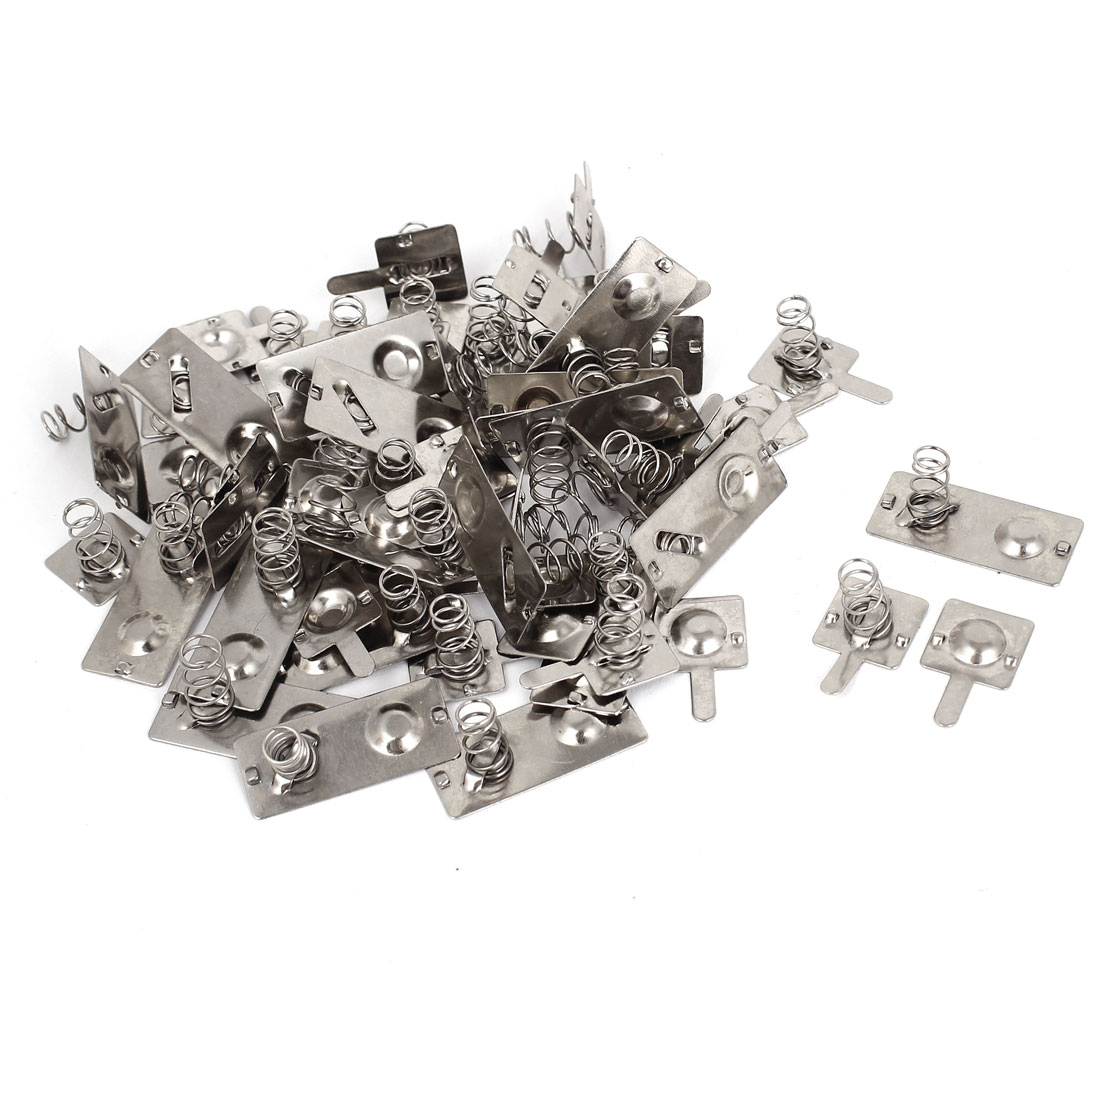 Silver Tone Metal AA Battery Connecting Spring Lamination Plates 22 Pcs